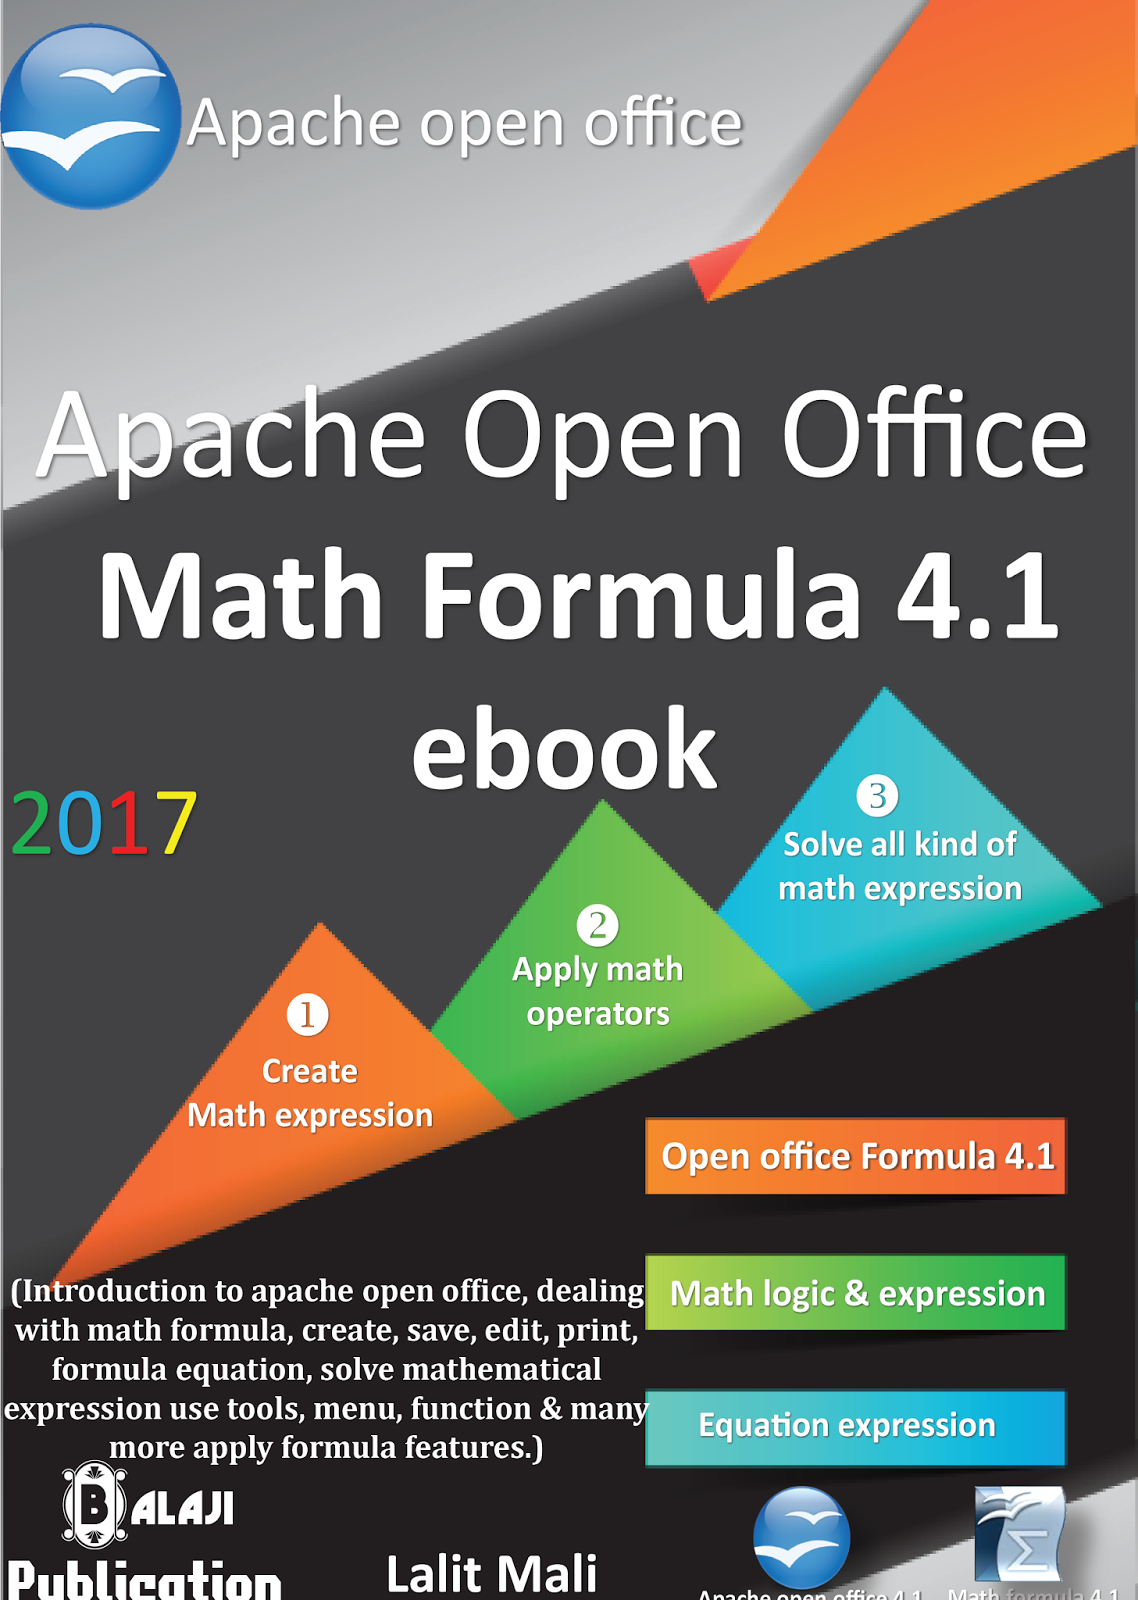 apache open office formula 4 1 ebook introduction to open office